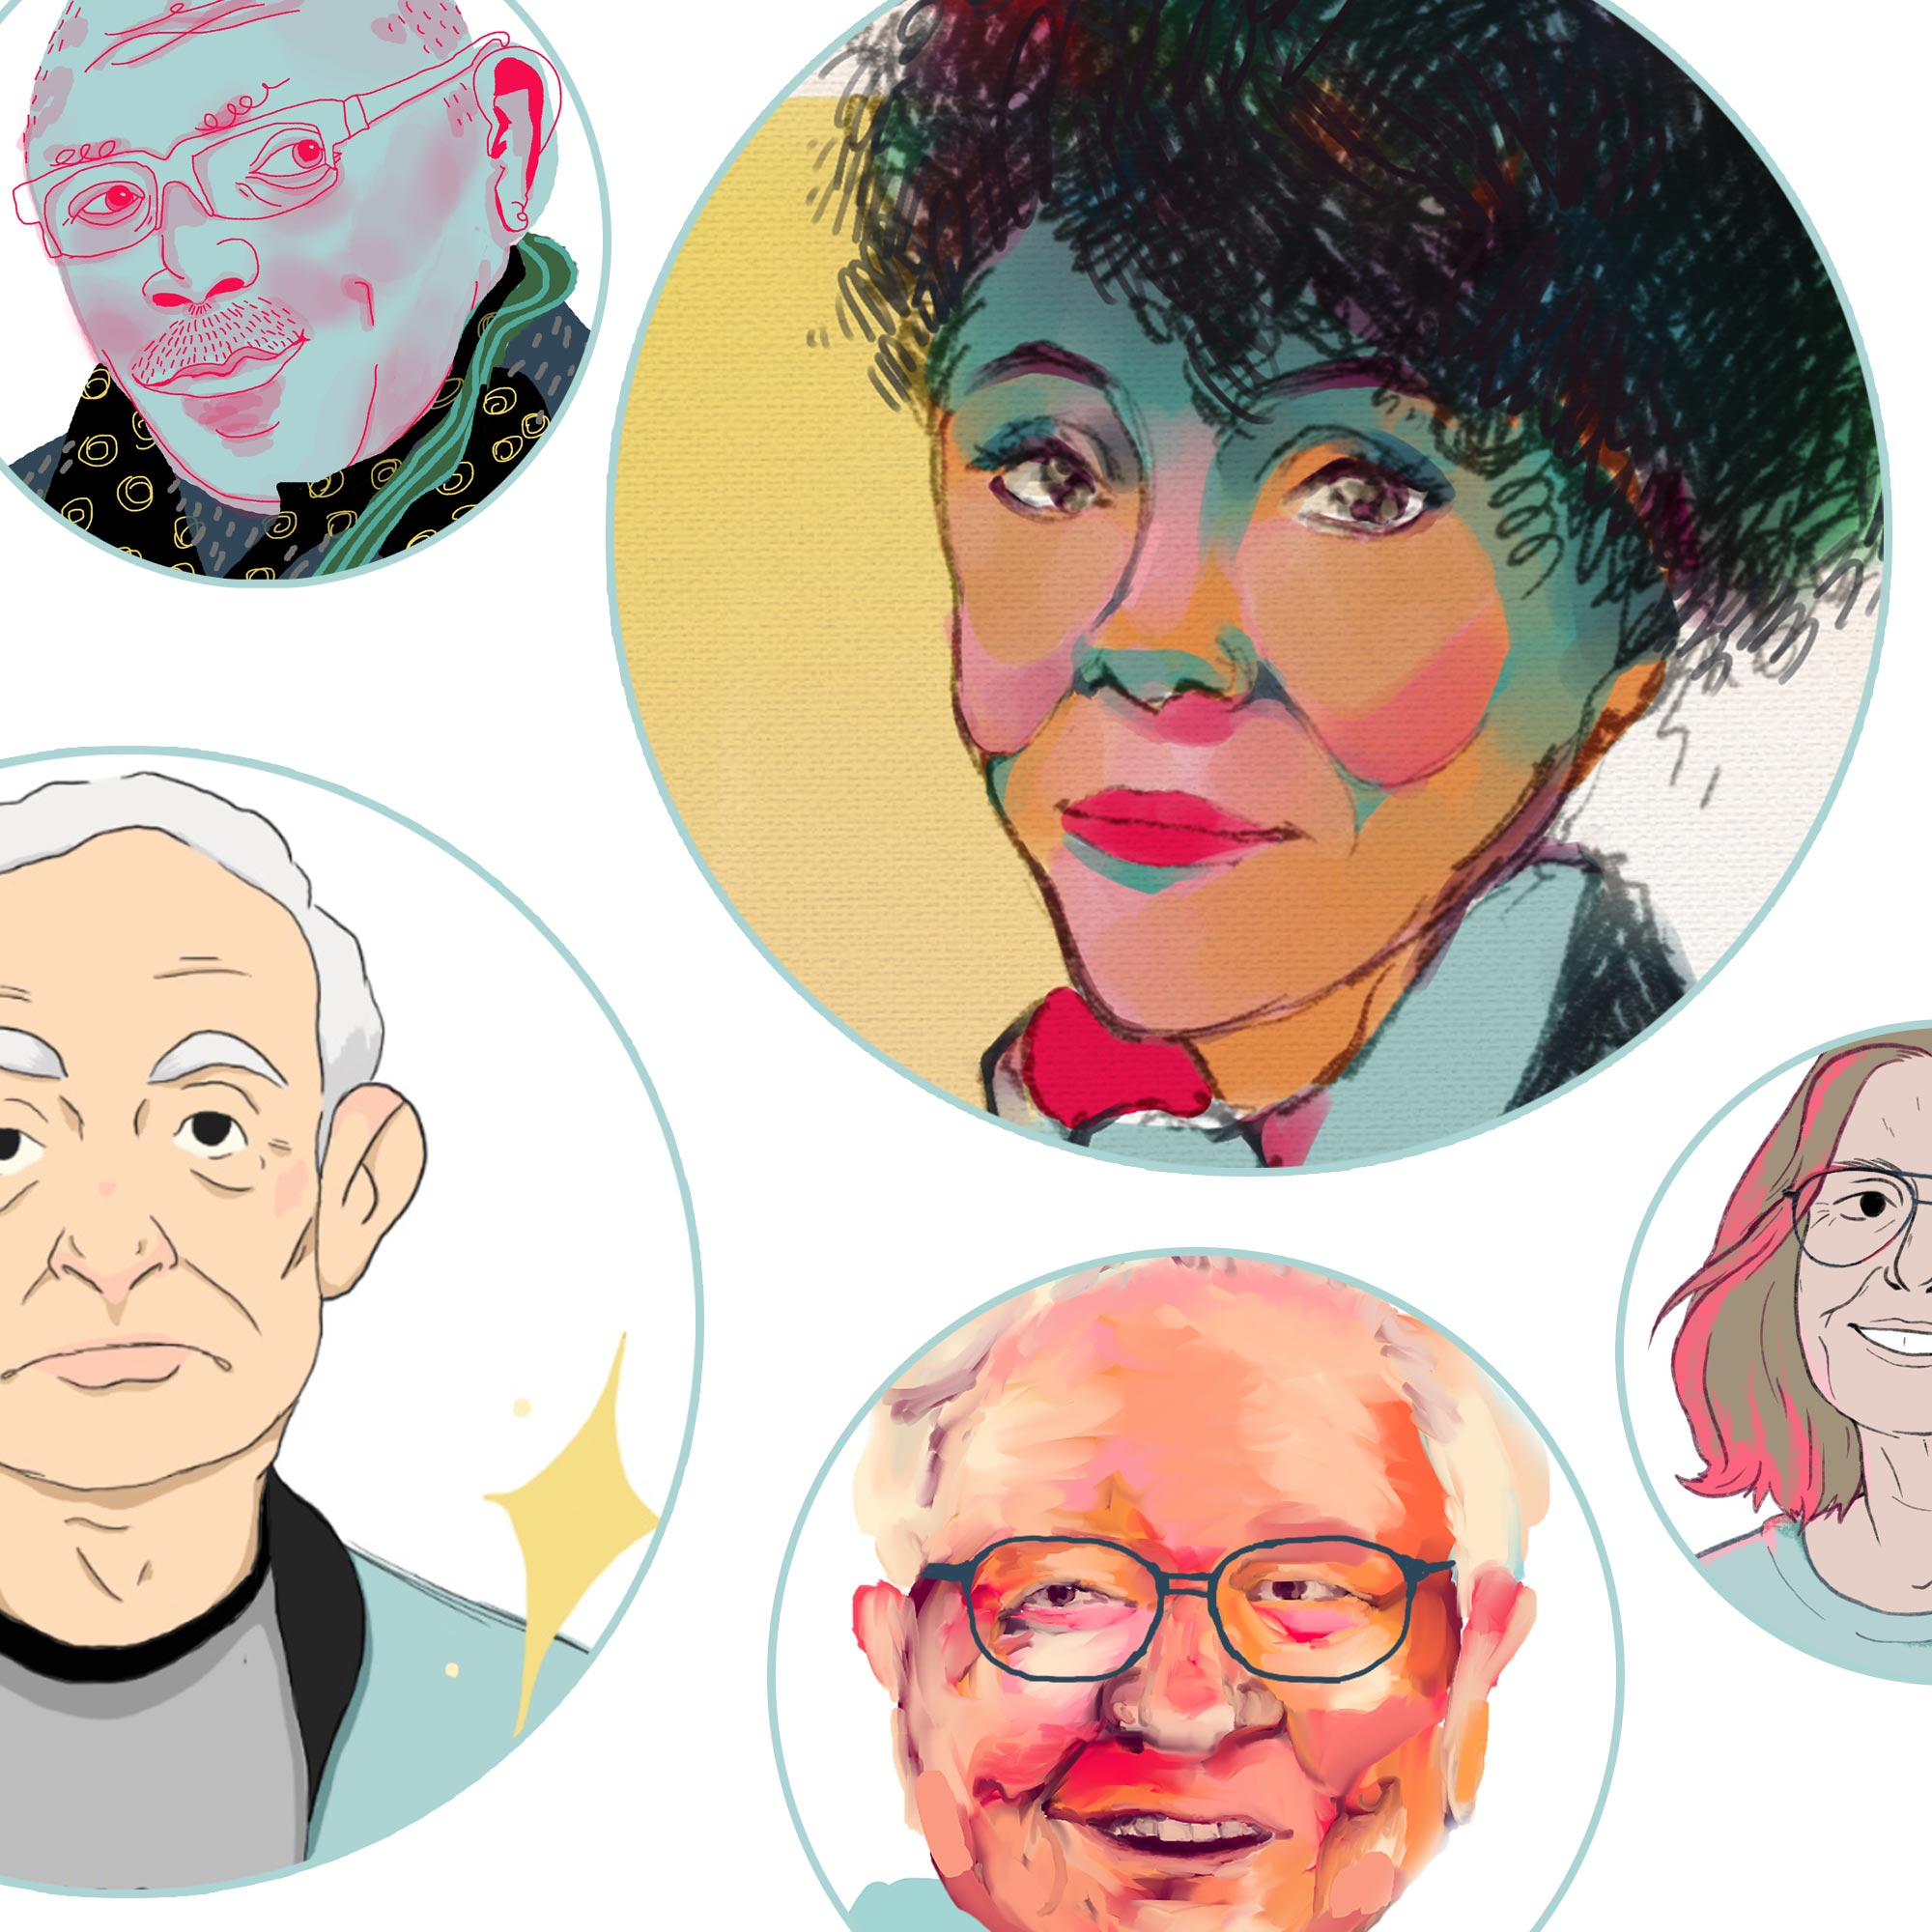 Illustrations of some of the people from the list.